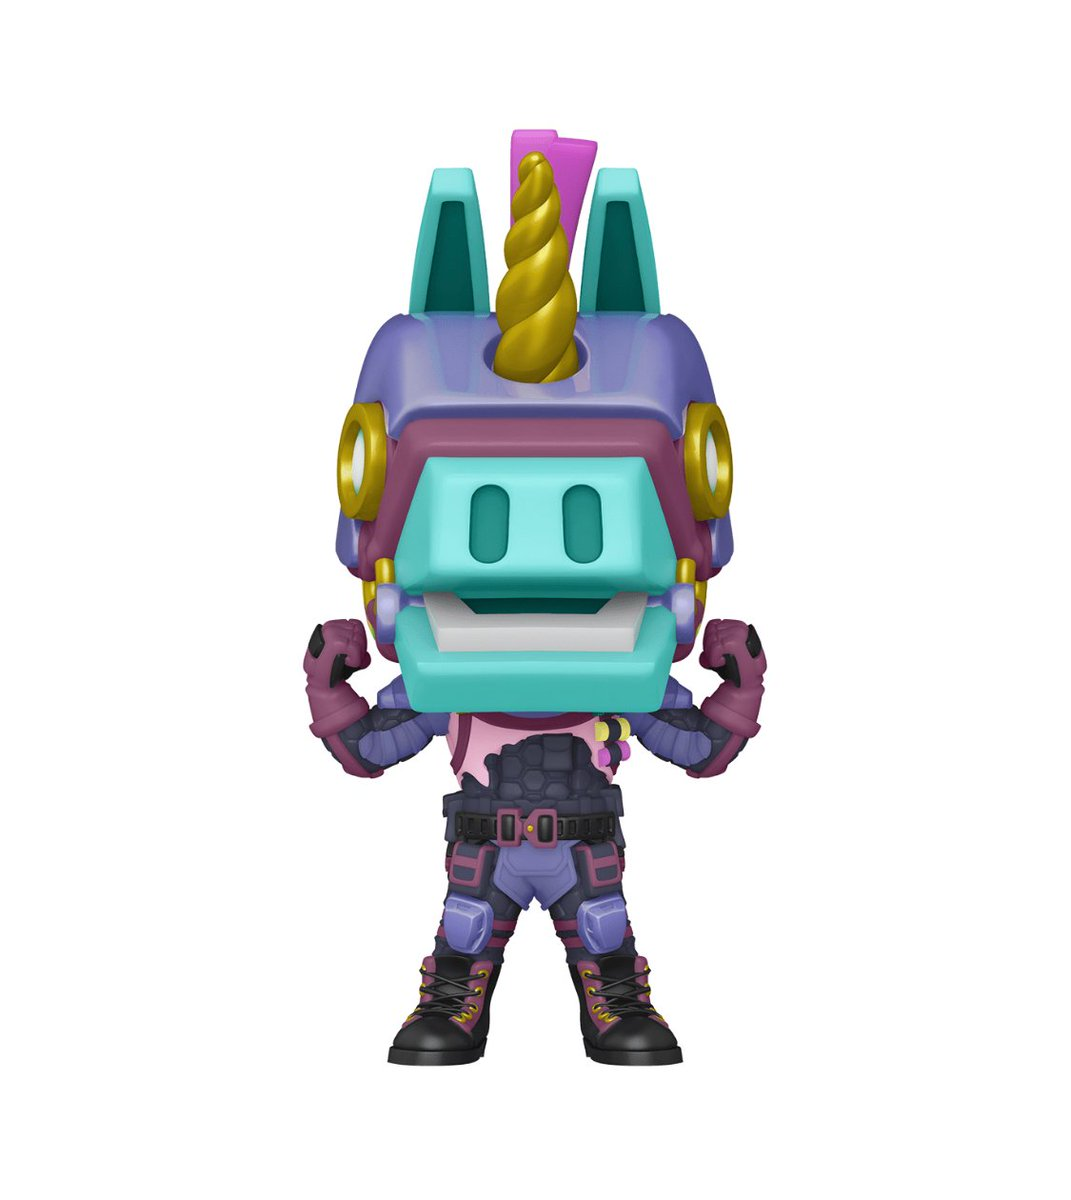 #Funko Pop Fortnite - Bash NYCC Shared Exclusive (with Protector) is now available in our shop for only $23.99. Buy it now